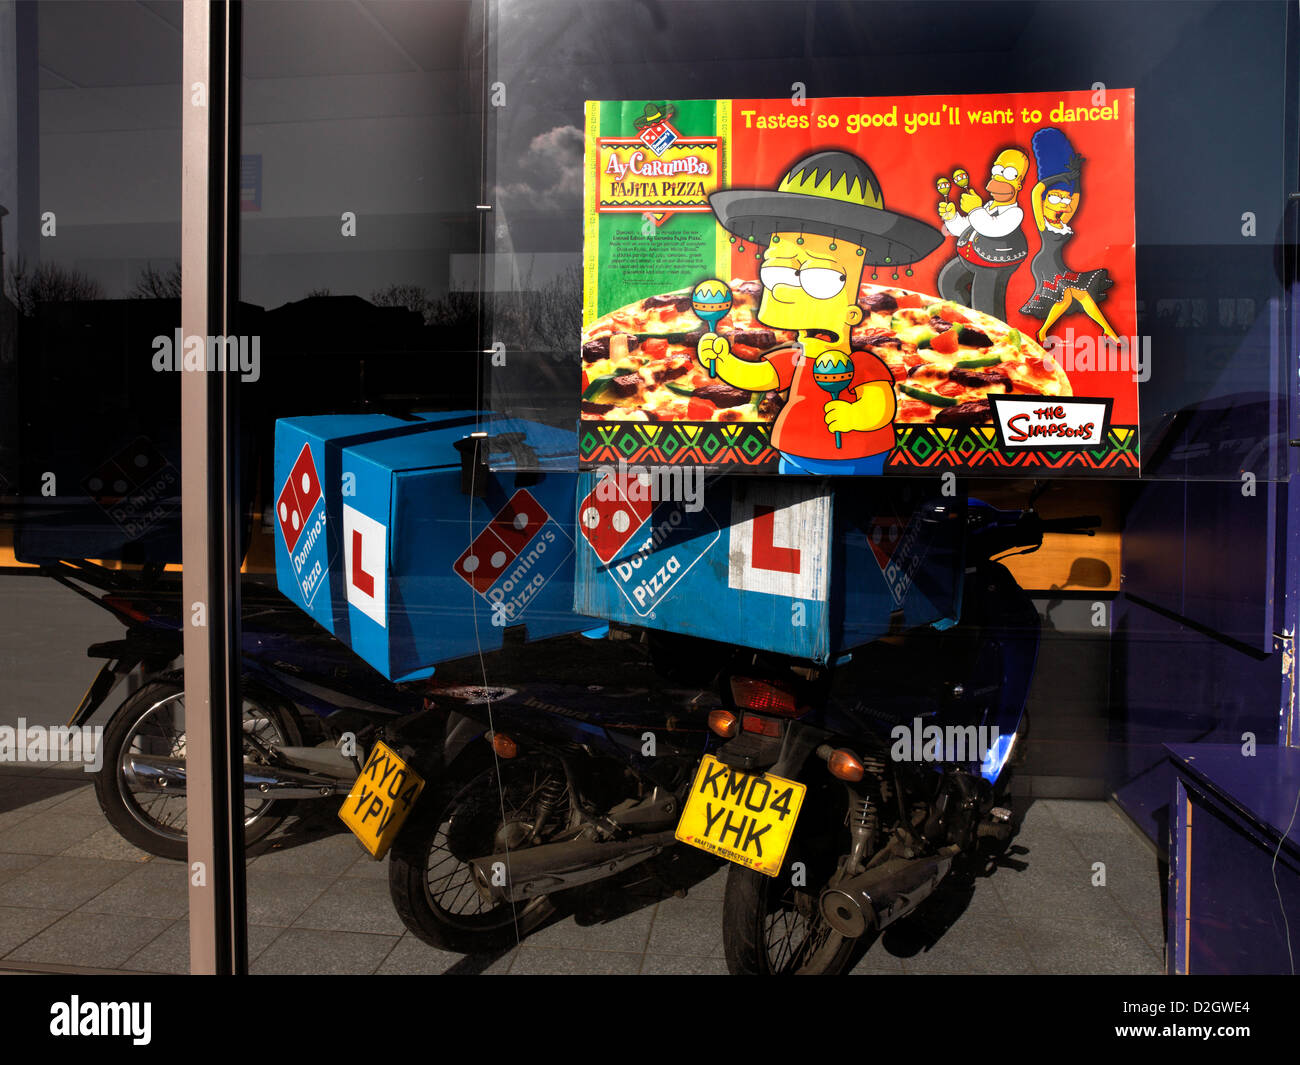 The Simpsons Poster High Resolution Stock Photography And Images Alamy